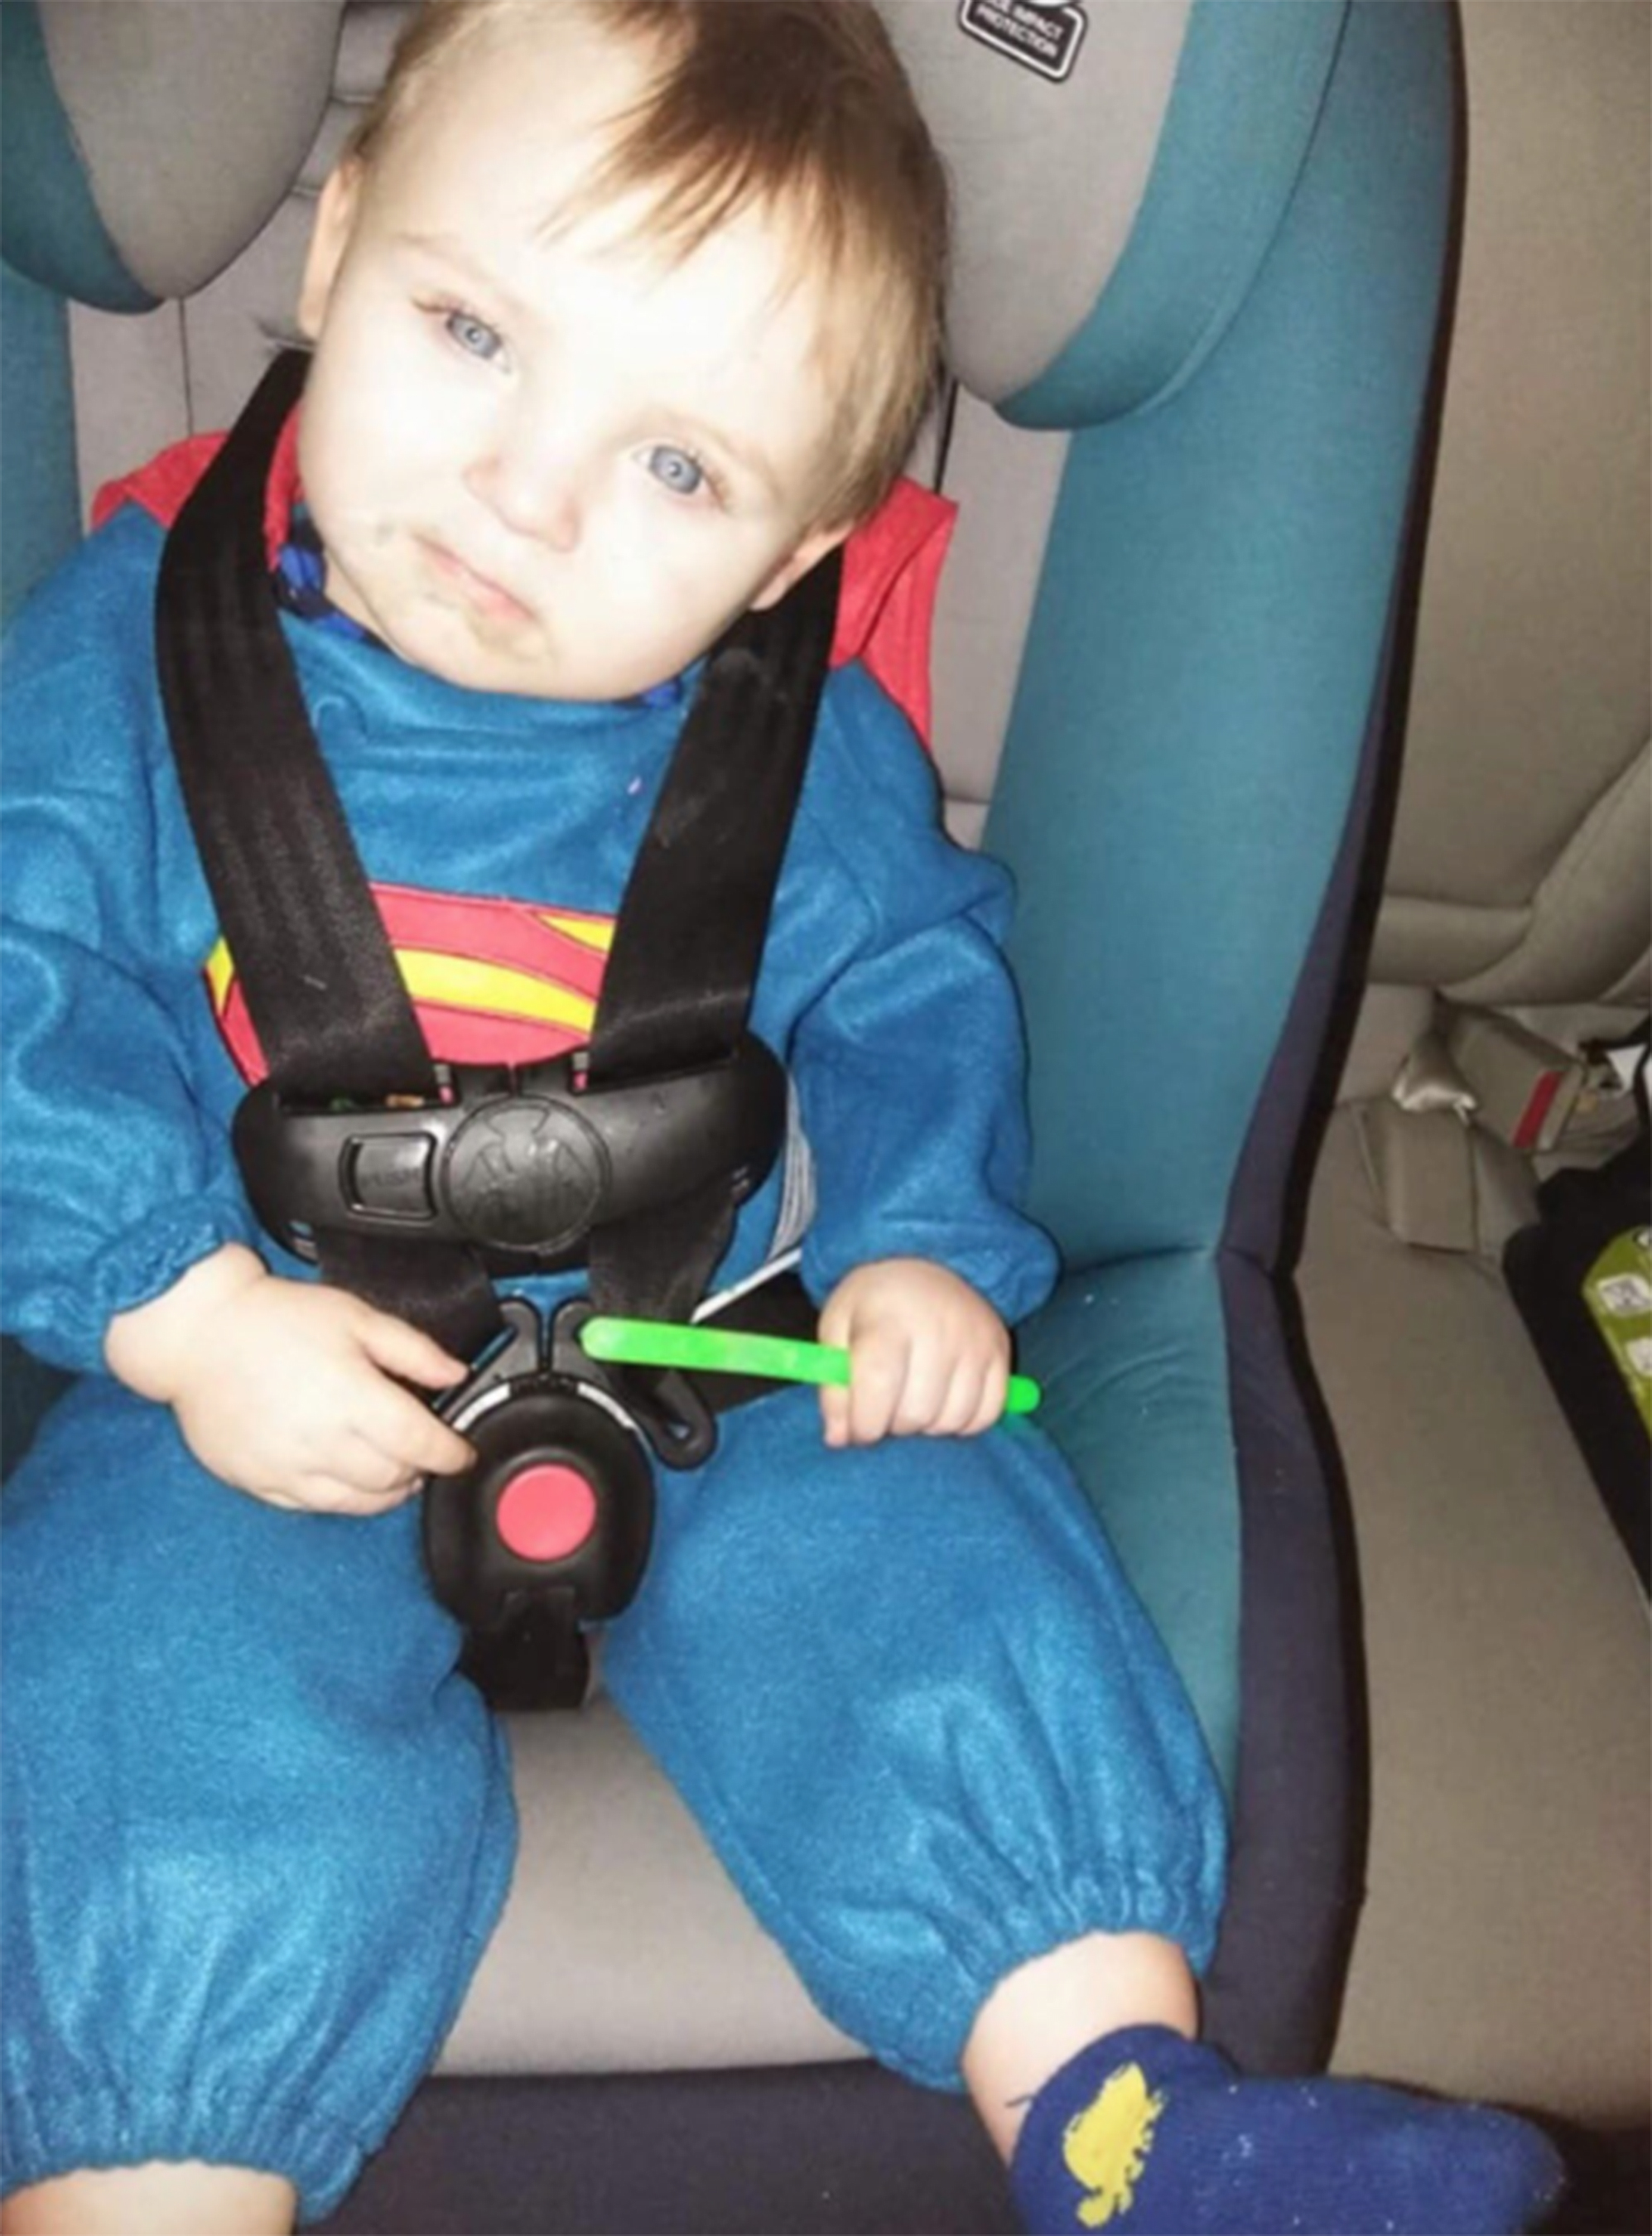 2-Year-Old Virginia Boy Went to Bed at 1 a.m. and Was Gone the Next Morning, Mom Says